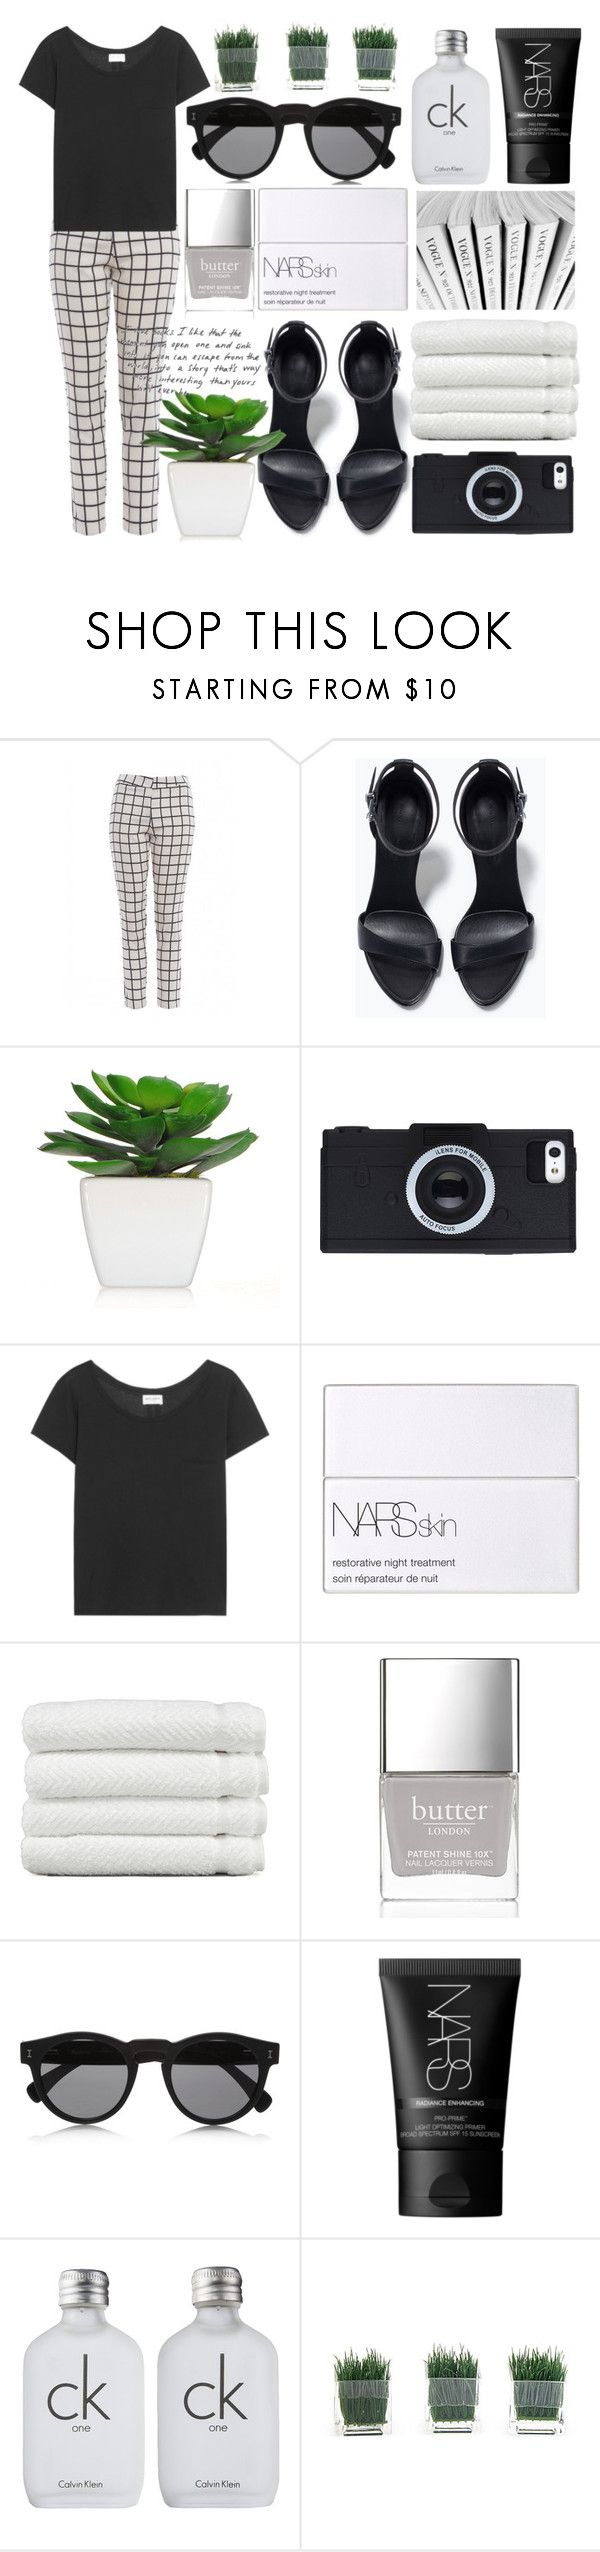 """""""Art Deco"""" by willneverdie ❤ liked on Polyvore featuring AX Paris, Zara, Yves Saint Laurent, NARS Cosmetics, Linum Home Textiles, Butter London, Karl Lagerfeld, Illesteva and Calvin Klein"""